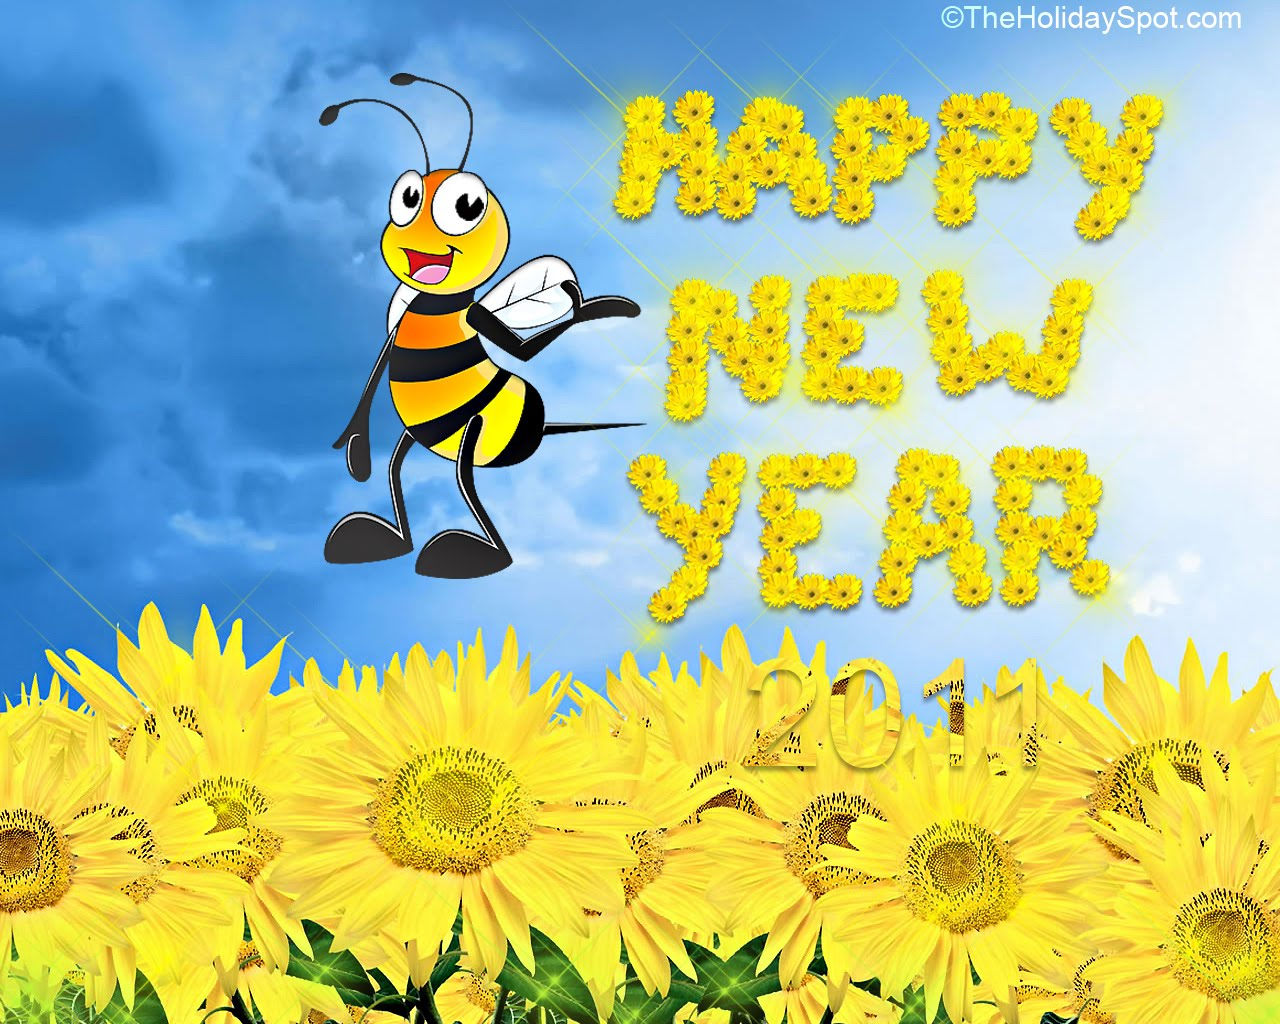 Wallpaper download new year 2015 - Happy New Year 2011 Wallpapers Download Happy New Year 2011 Wallpaper Welcome 2011 Desktop Pc Walppapers 2011 Printable Cool Graphics Images Posters